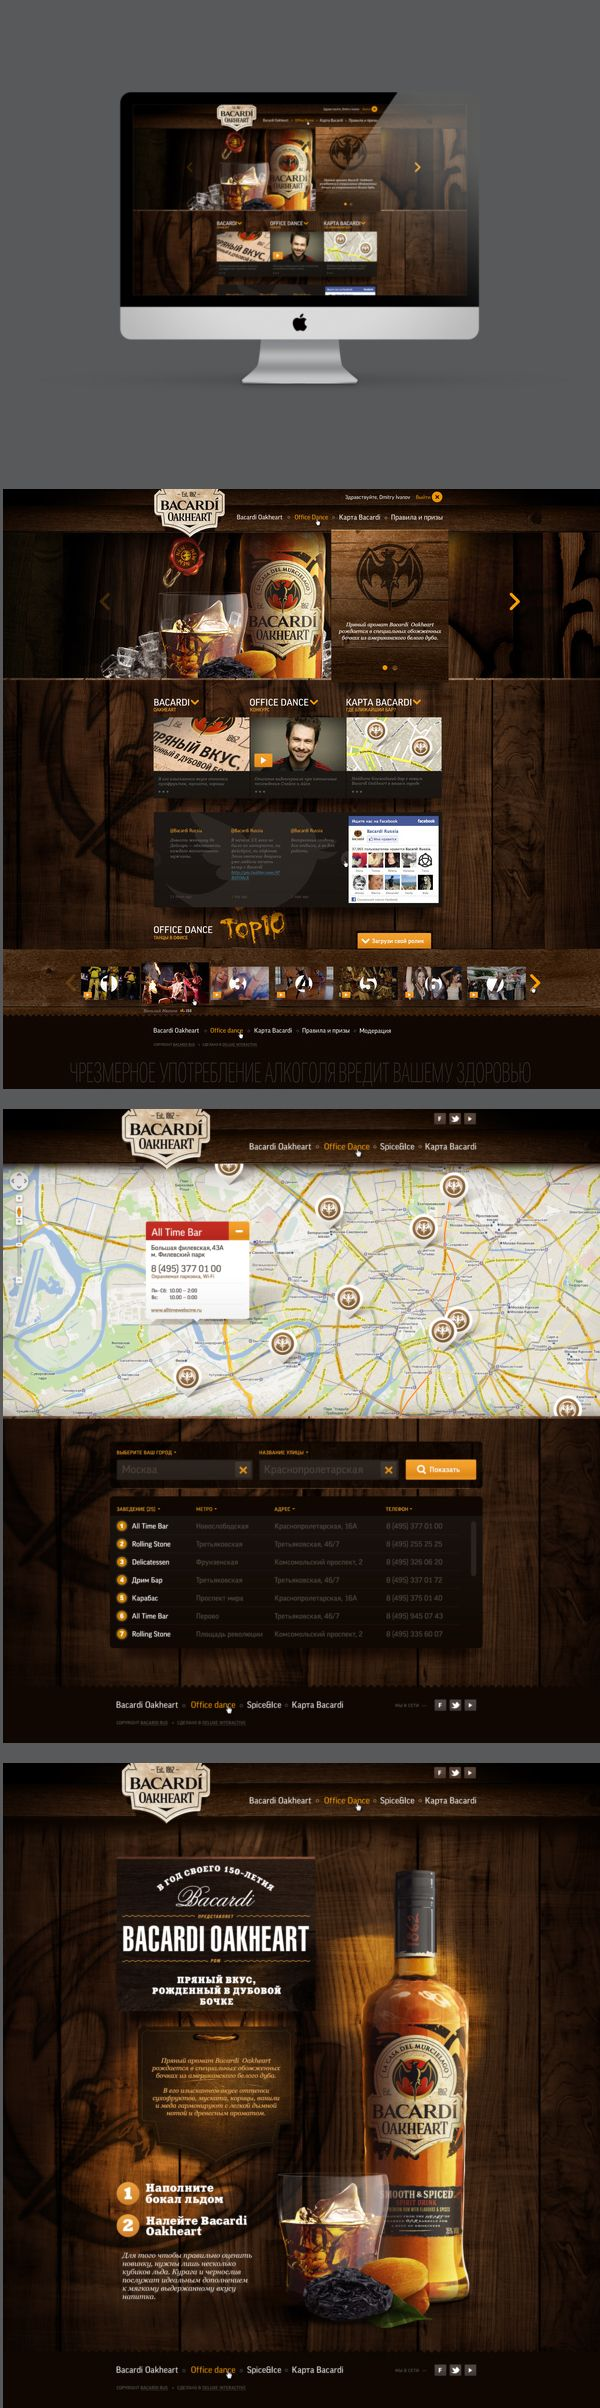 #web  http://www.webdesignserved.com/gallery/Spice-and-Ice/4213009 | #webdesign #it #web #design #layout #userinterface #website #webdesign < repinned by www.BlickeDeeler.de